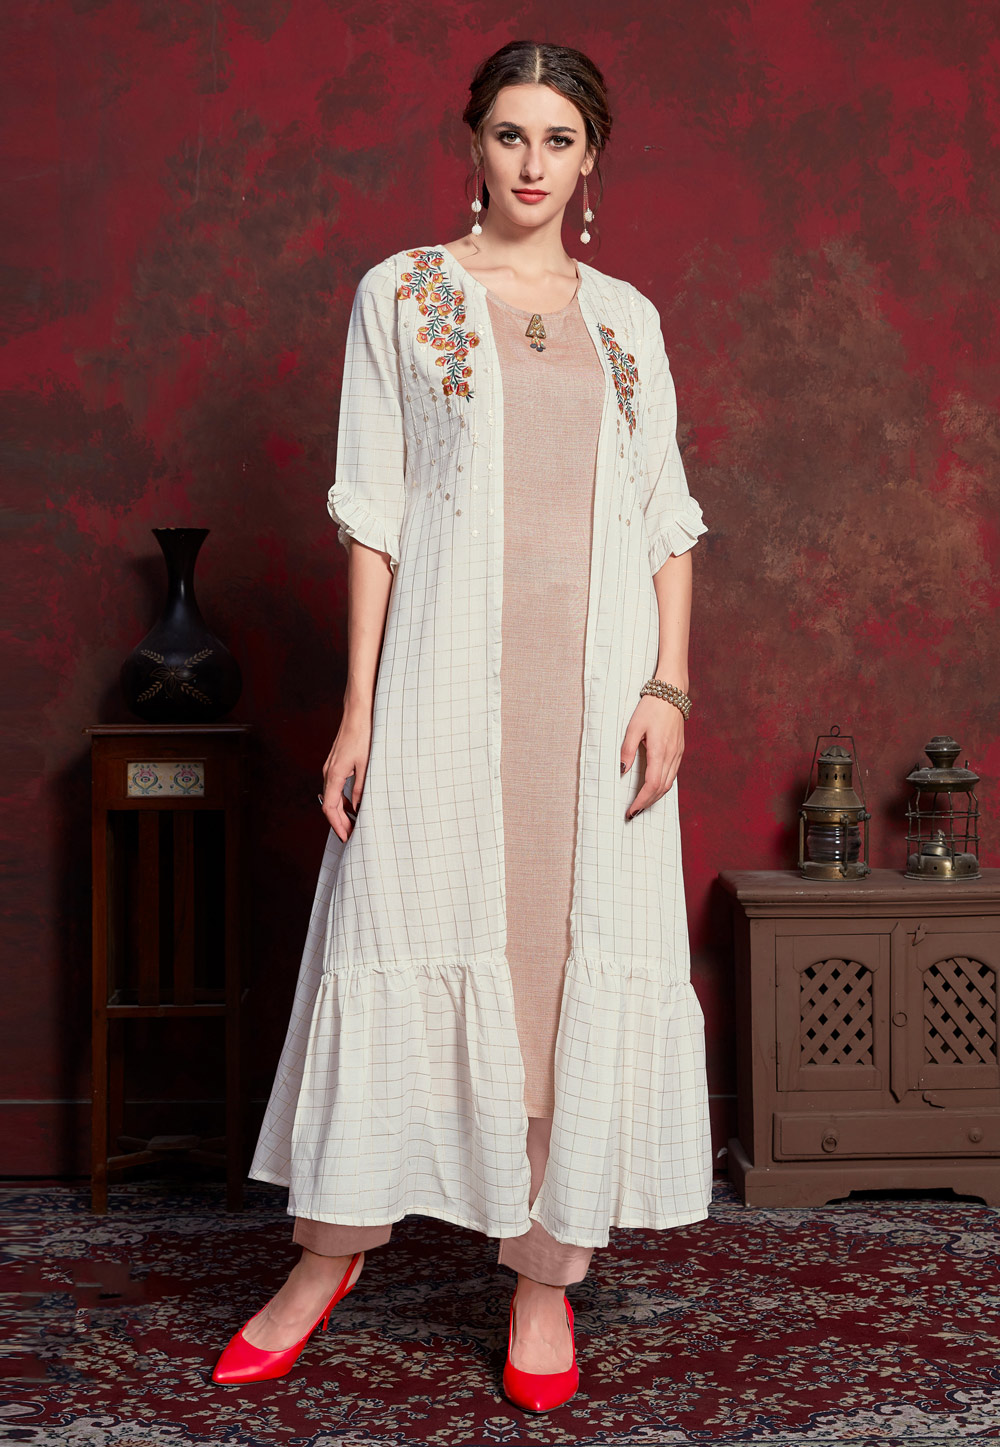 Off White Rayon Readymade Tunic With Jacket 183515